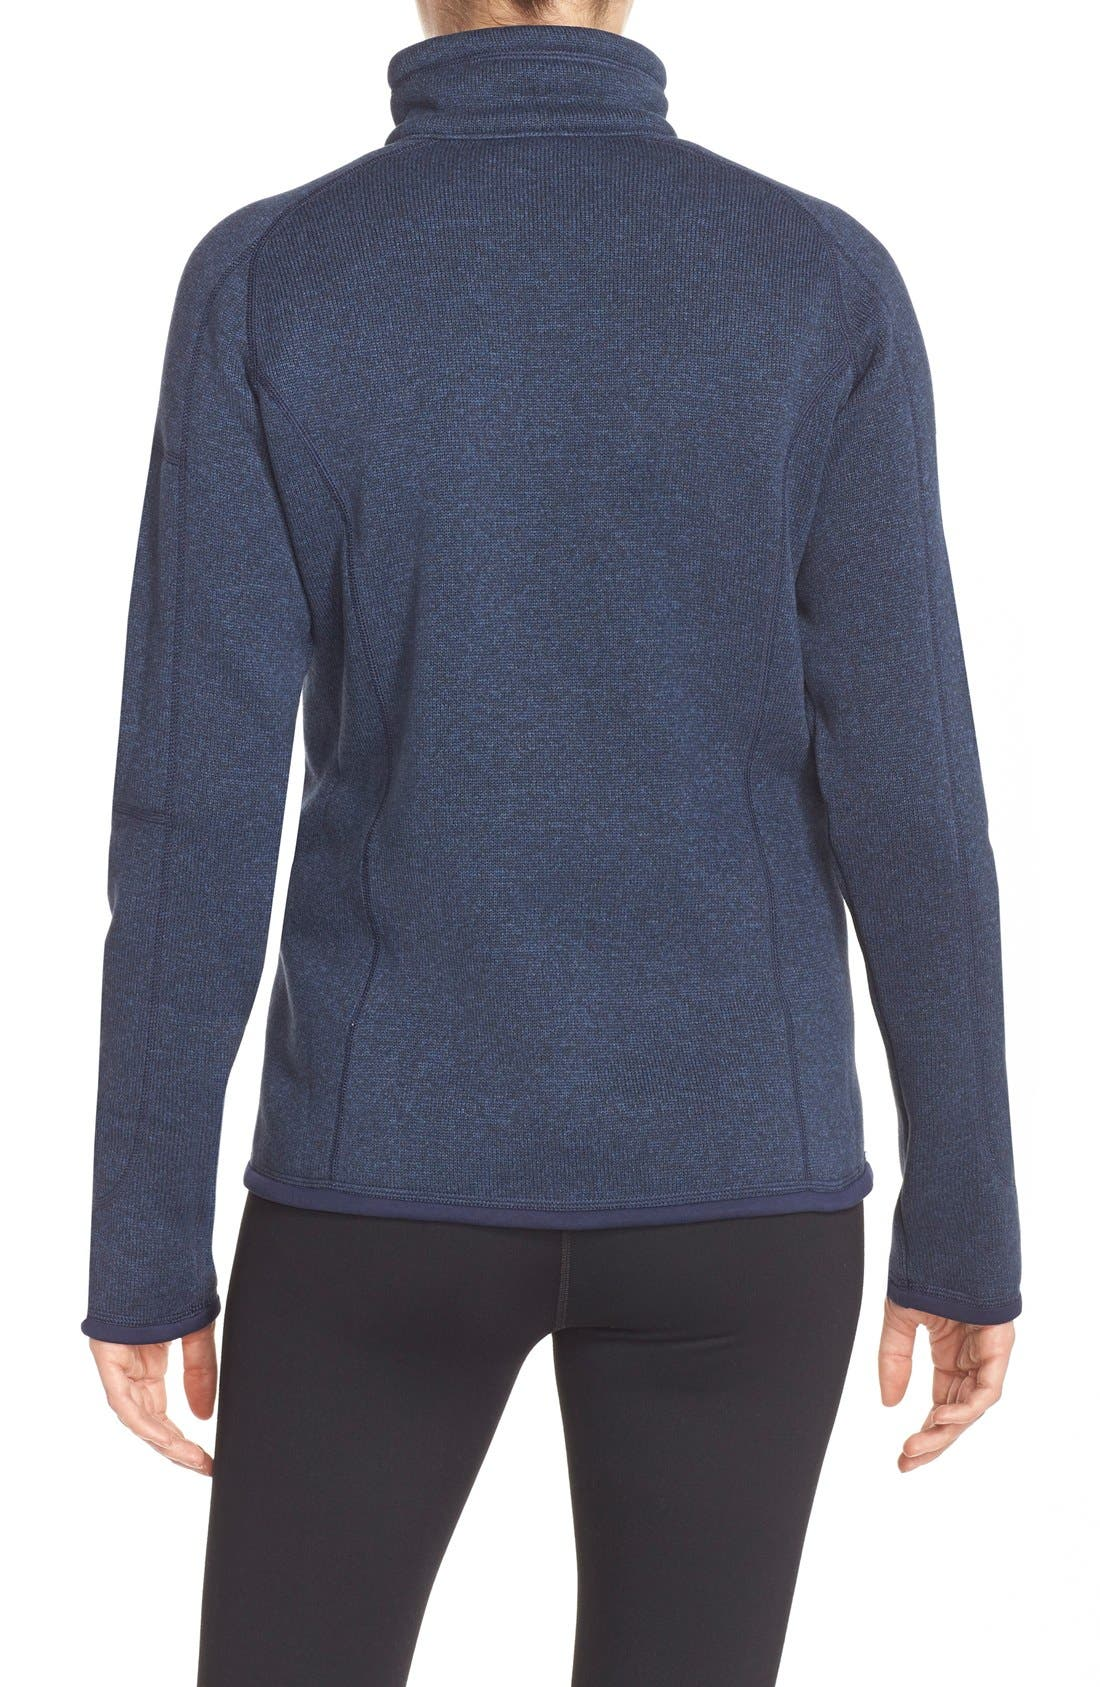 PATAGONIA, Better Sweater Zip Pullover, Alternate thumbnail 4, color, CLASSIC NAVY